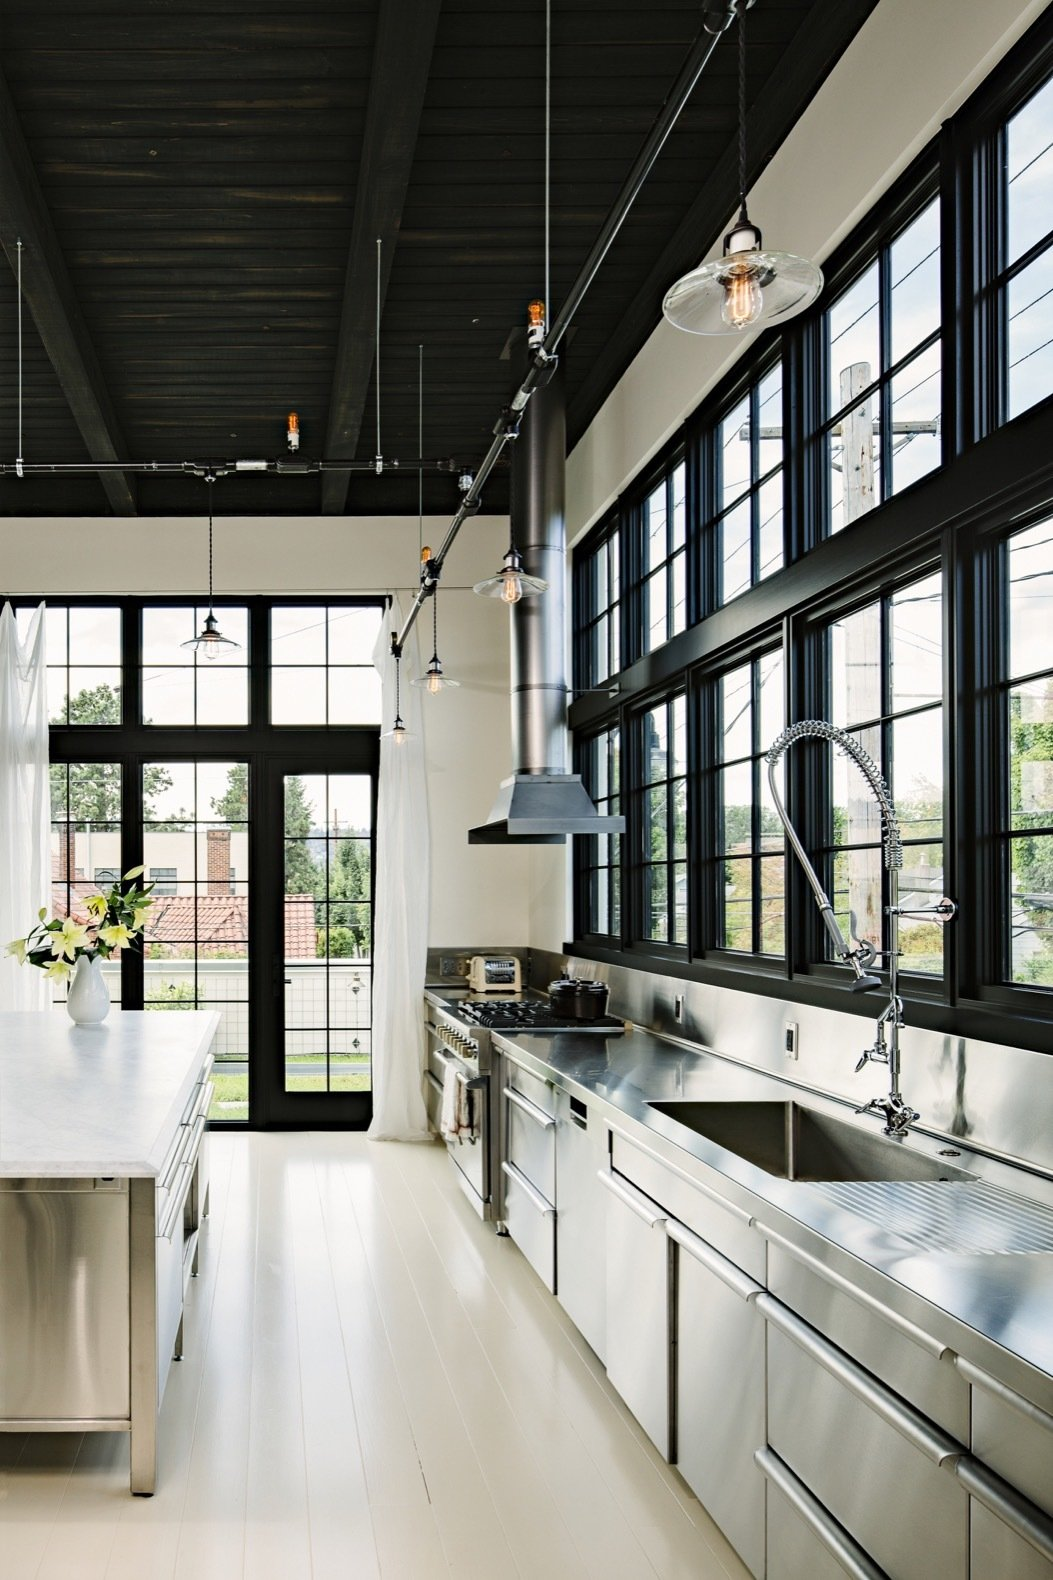 "Kitchen, Painted Wood Floor, Wall Oven, Metal Cabinet, Pendant Lighting, Metal Backsplashe, Cooktops, Range Hood, Refrigerator, Undermount Sink, and Metal Counter To bring their adaptive-reuse abode to life, a pair of former New Yorkers tapped local studio Emerick Architects, which had completed similar renovations, such as the nearby rehabbed Ford Model-T Factory. ""Marrying practicality with craftsmanship, almost everything for the project was handmade locally by Portland artisans including cabinetry, steel work, railings, doors, stairs, light fixtures, and plaster,"" adds the firm. Stainless steel has been used for the kitchen counters, cabinets, and backsplash.  Photos from A 1920s Portland Warehouse Is Rehabbed Into an Industrial-Chic Home"